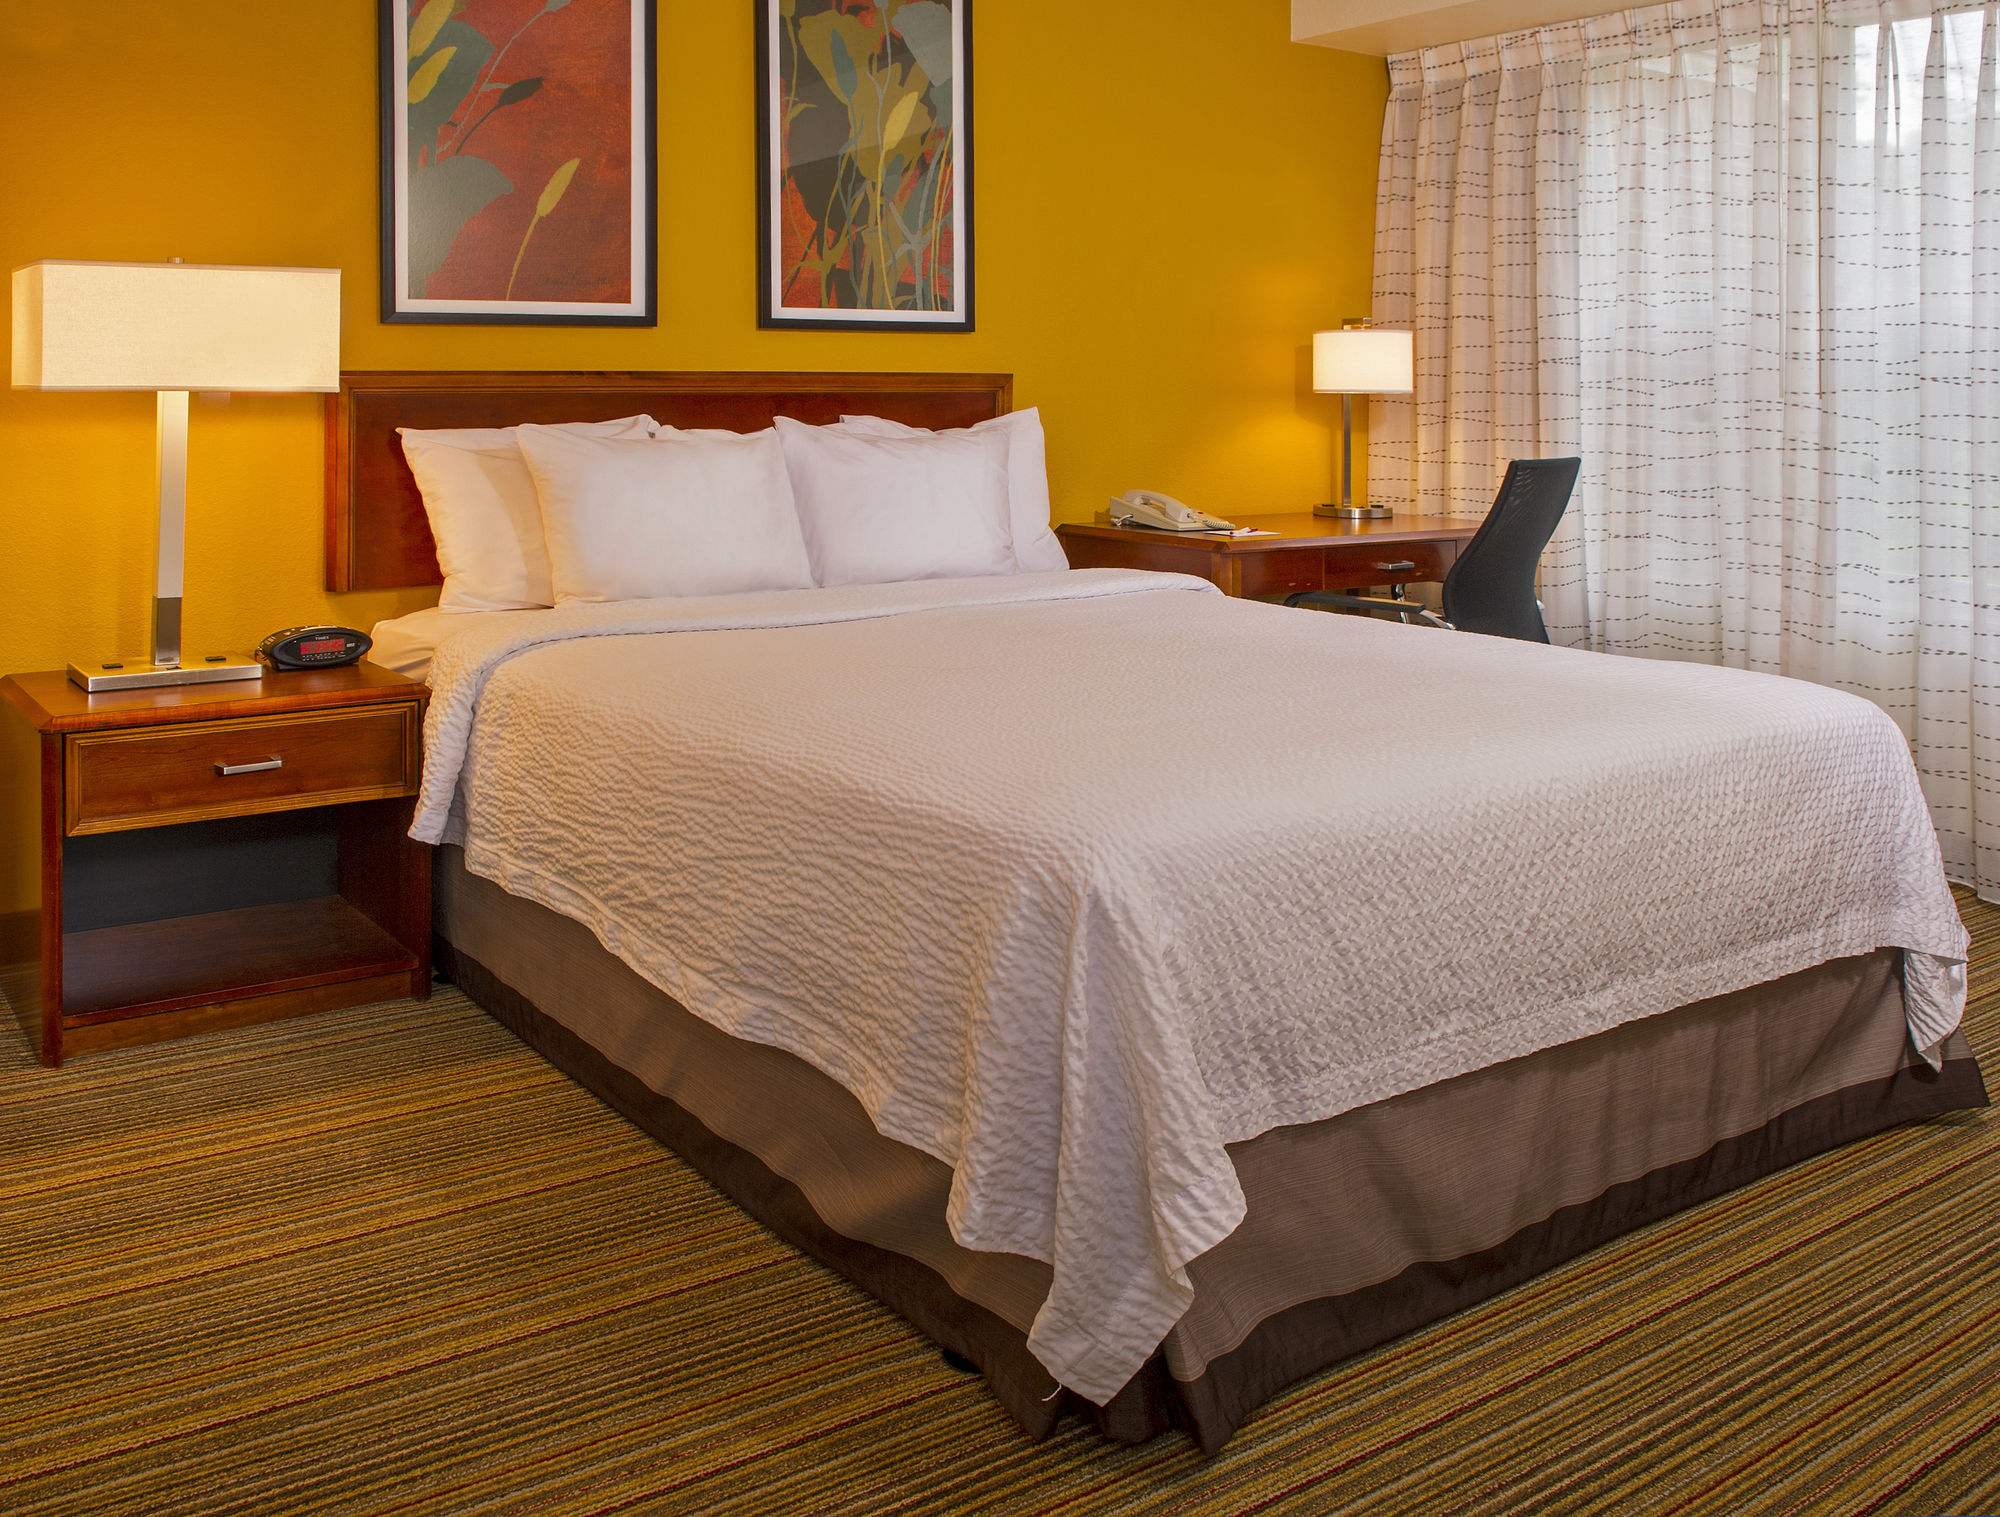 Linthicum Hotel Coupons for Linthicum, Maryland - FreeHotelCoupons.com